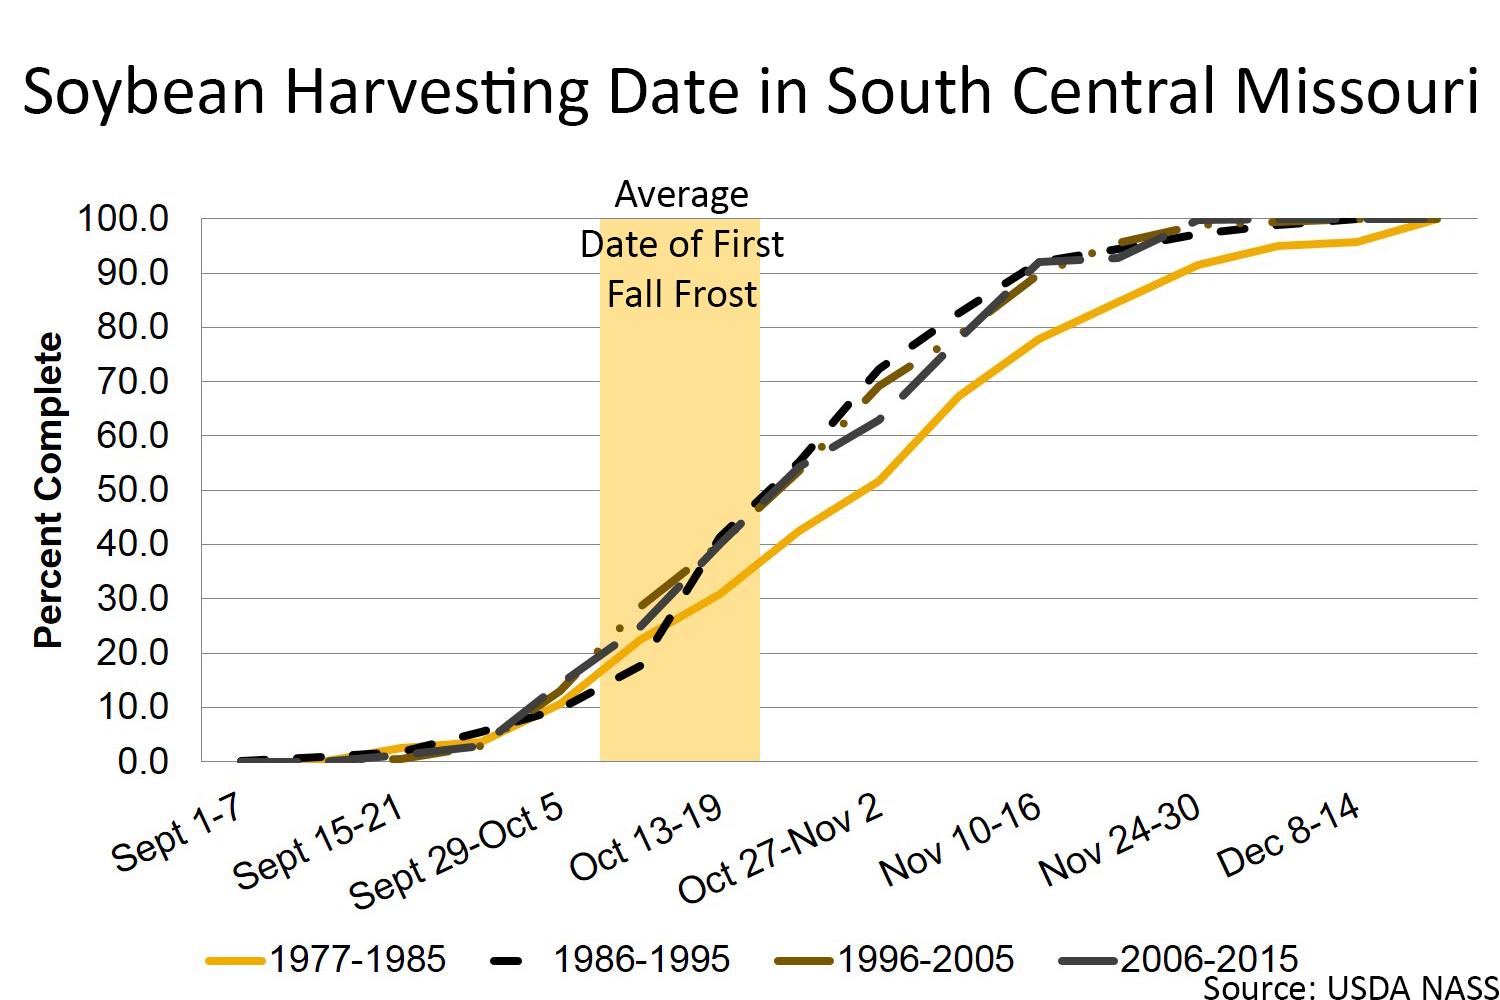 Soybean harvesting date in south central Missouri chart